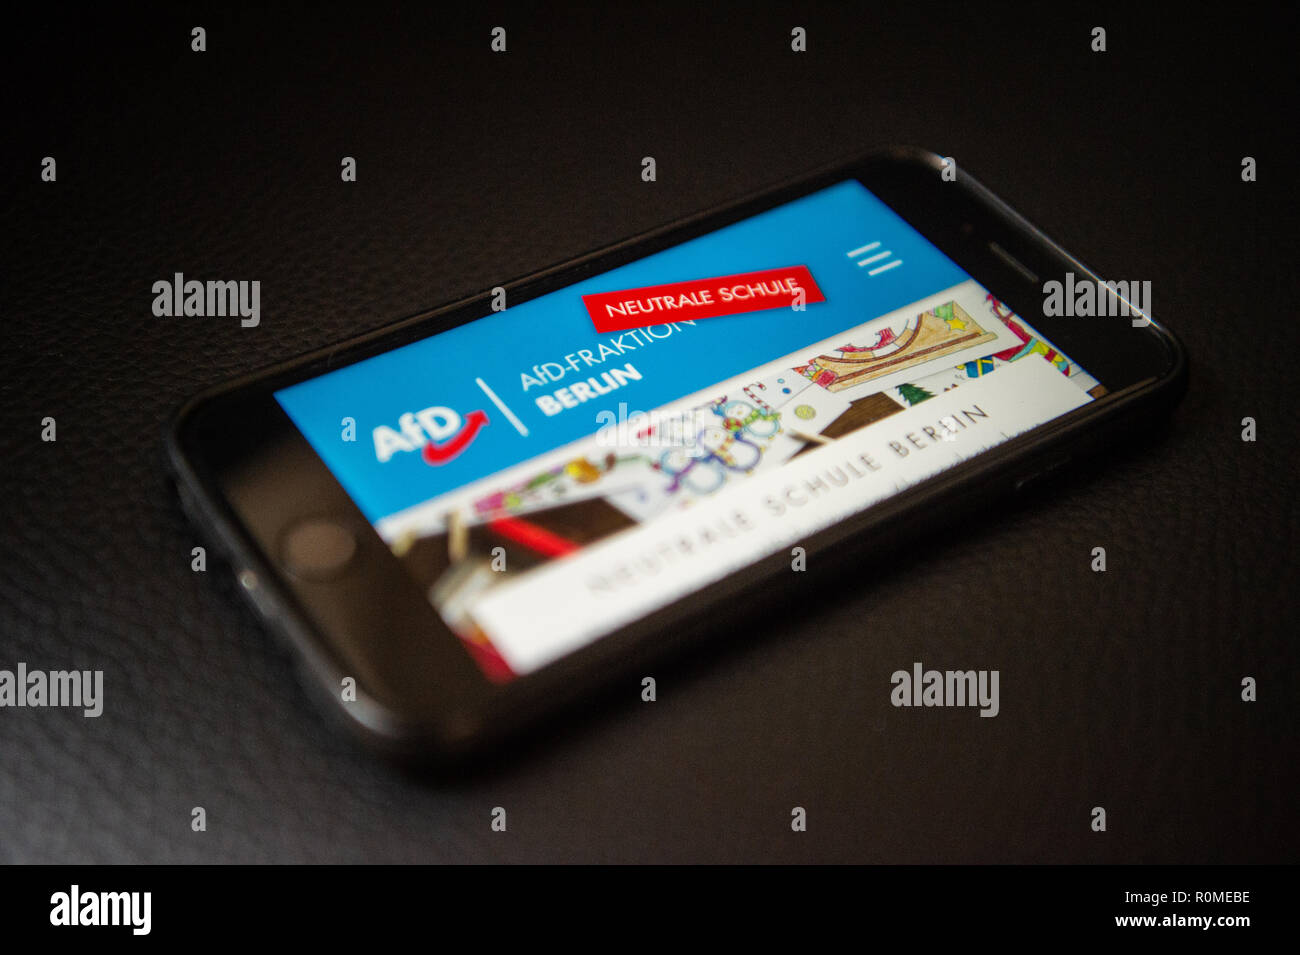 Berlin, Germany. 06th Nov, 2018. ILLUSTRATION - A mobile phone shows the Internet portal neutral school of the citizens of Berlin AfD. On 22.10. the Berlin AfD had put a website online, on which pupils and parents can tell if teachers in class are critical of the AfD. Credit: Arne Immanuel Bänsch/dpa/Alamy Live News - Stock Image